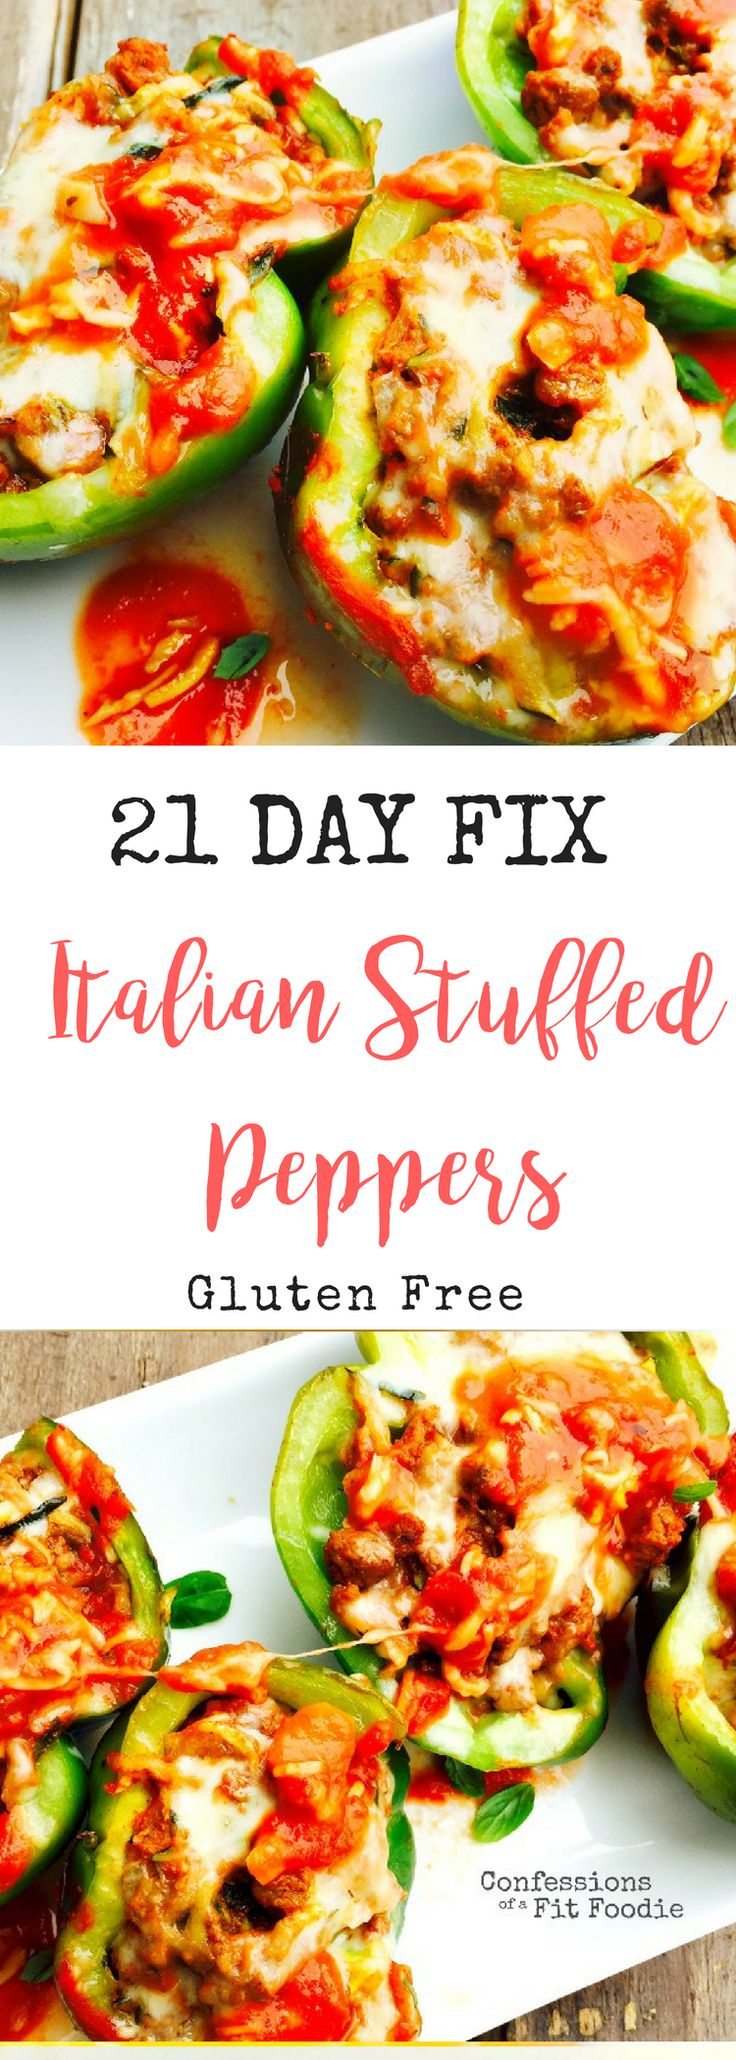 21 Day Fix Italian Stuffed Peppers